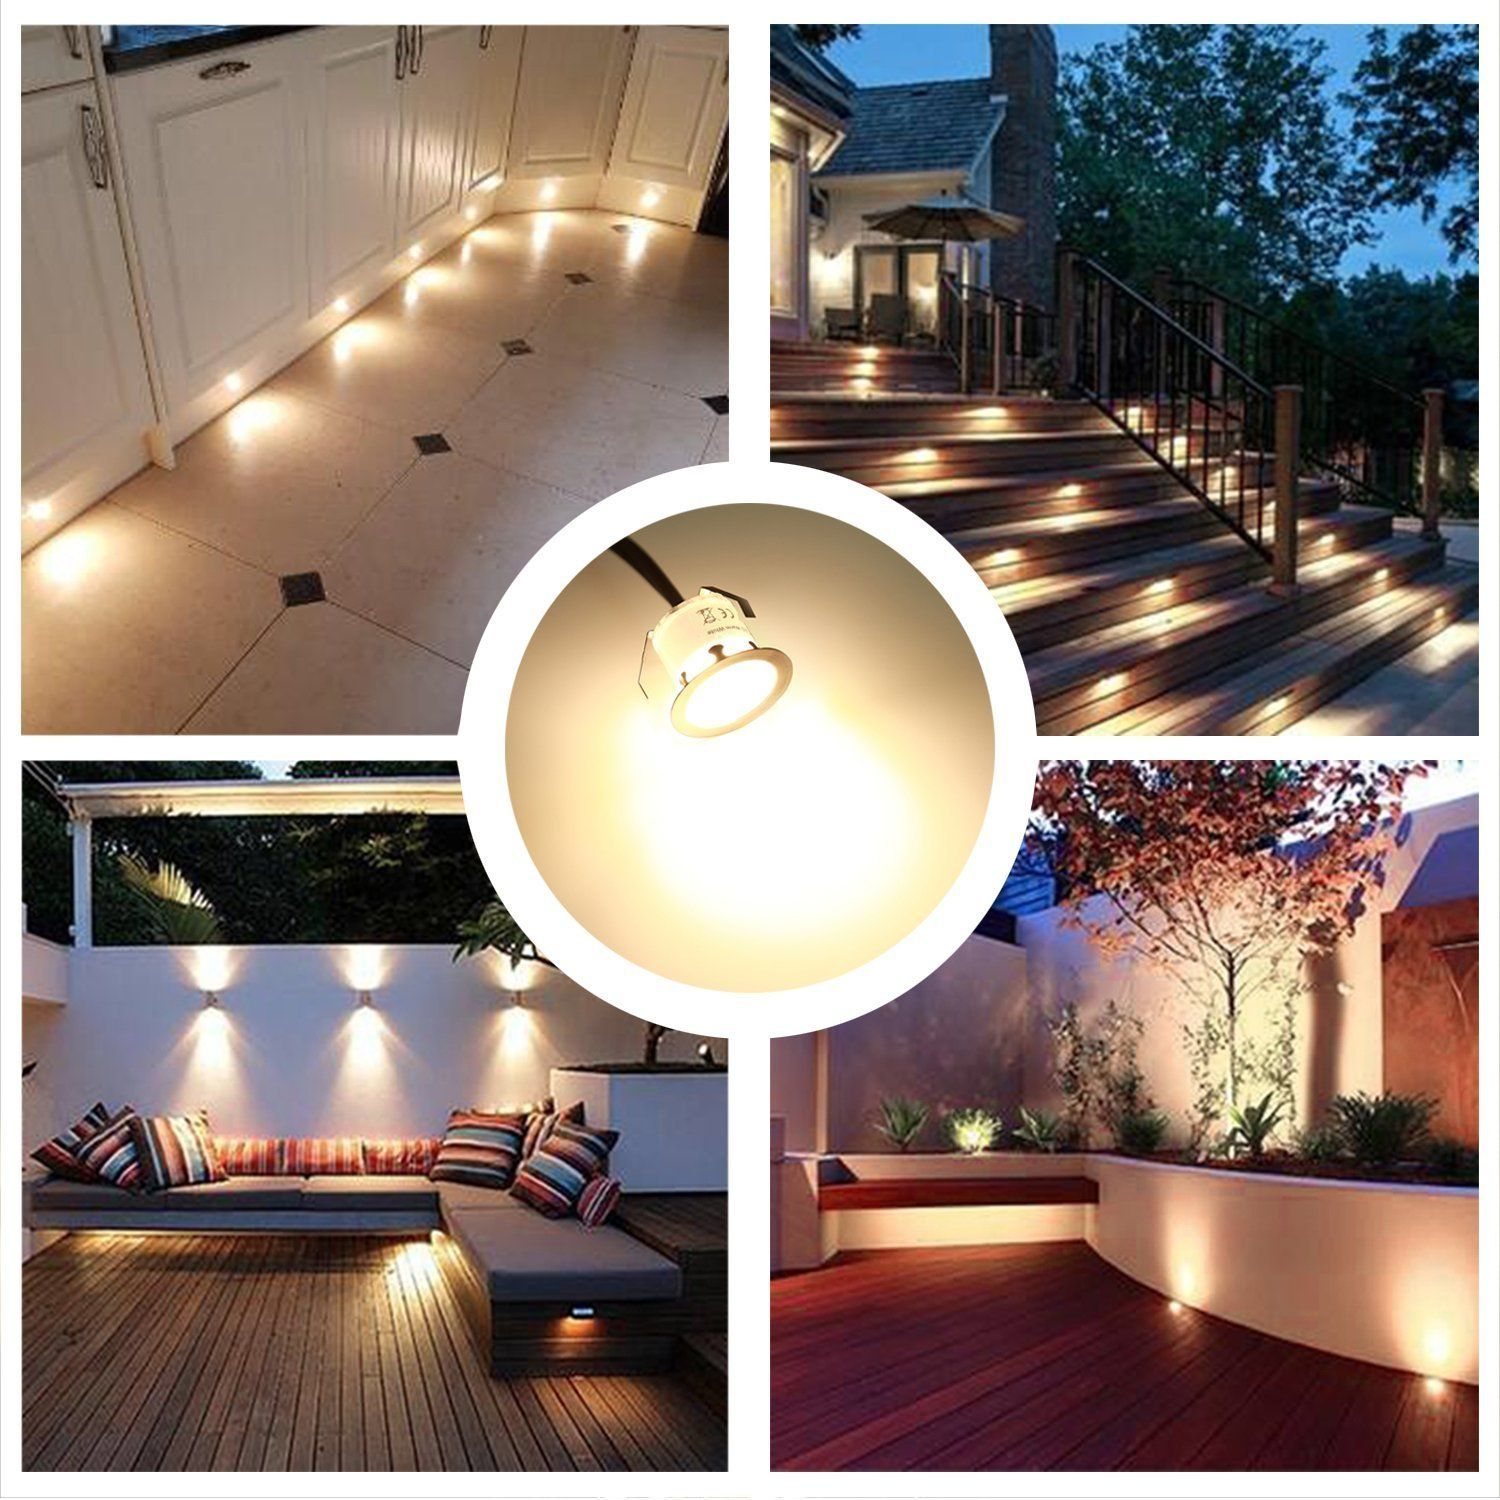 Recessed Led Deck Lighting Kits 12v Low